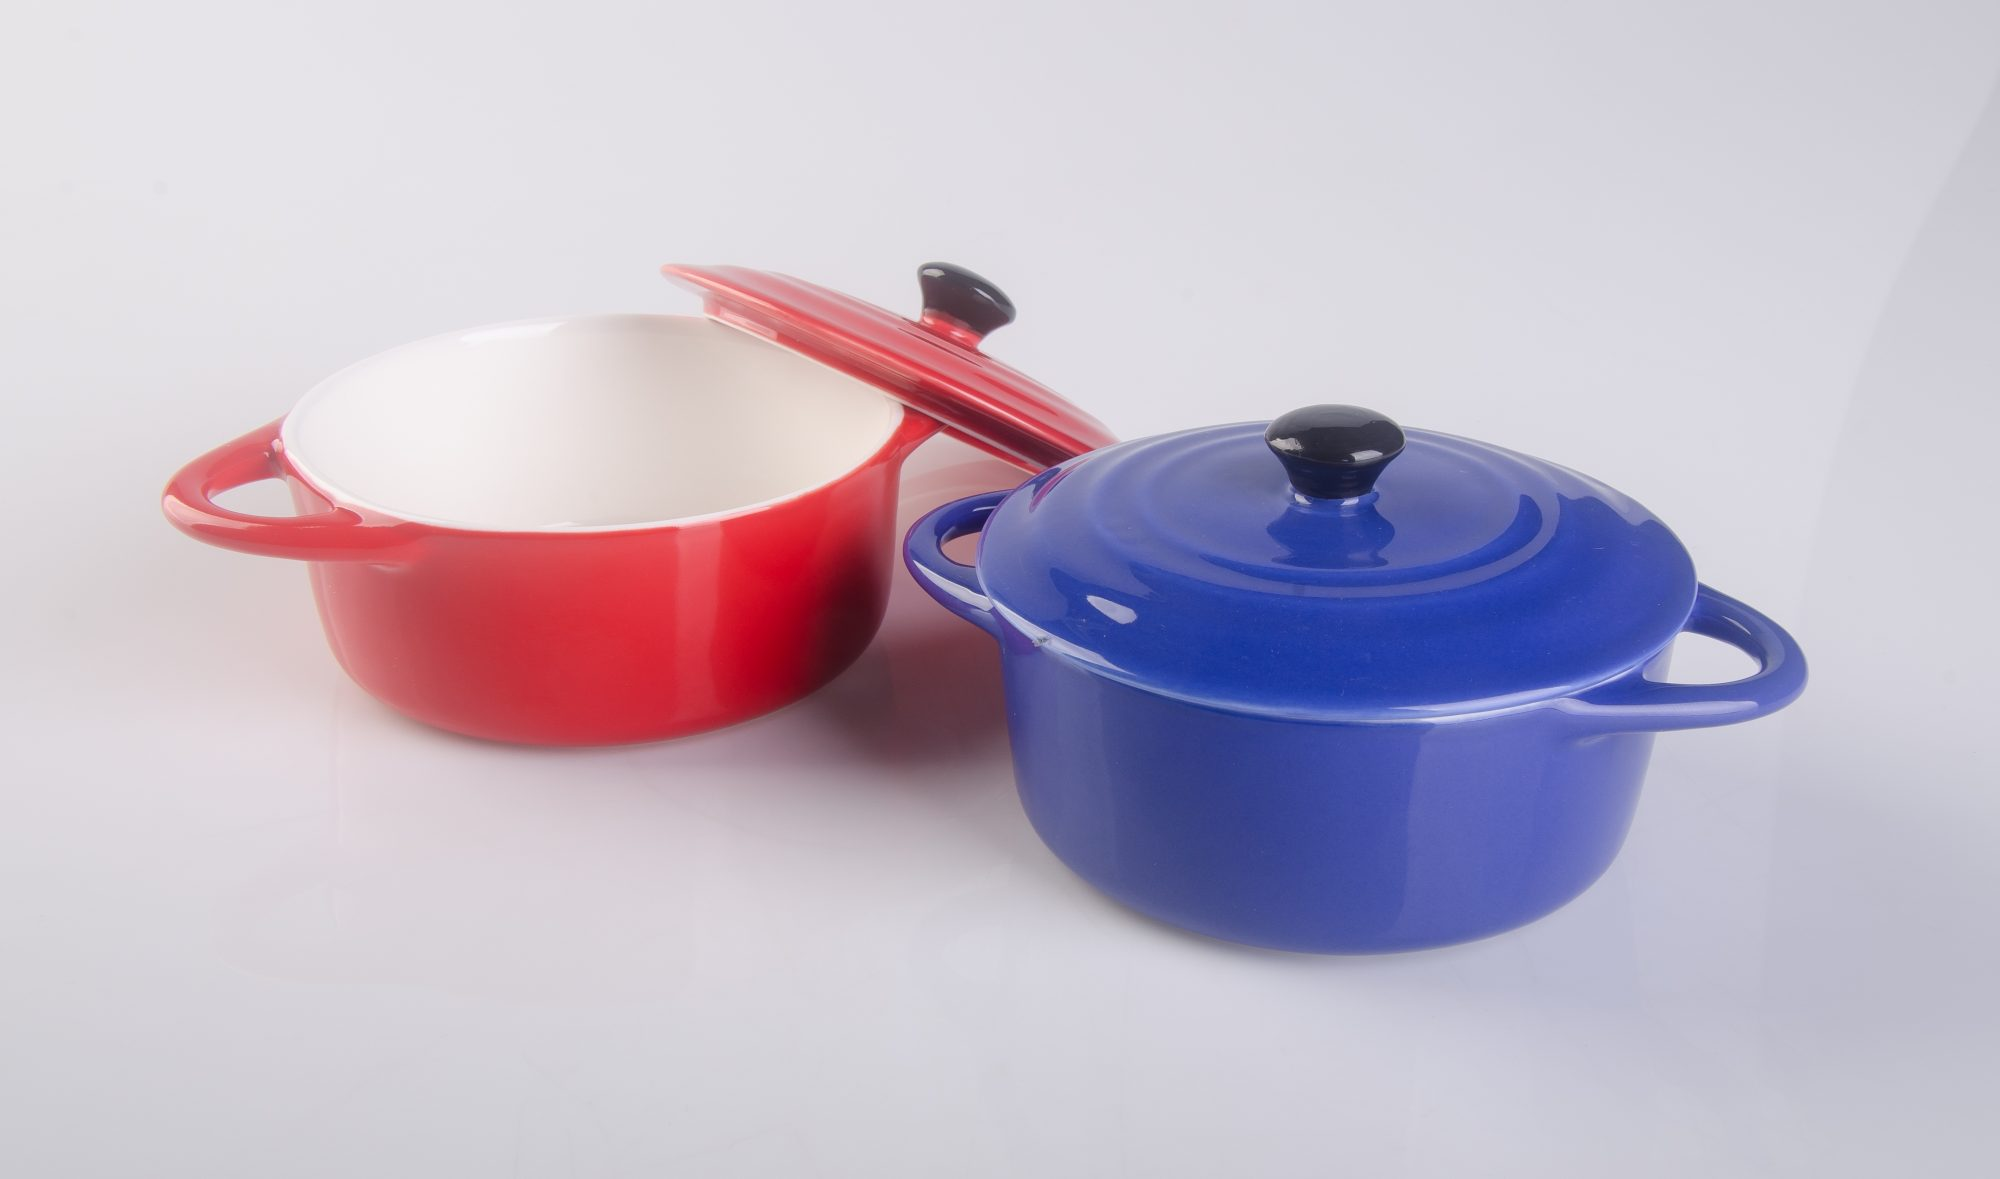 one red dutch oven and one blue dutch oven